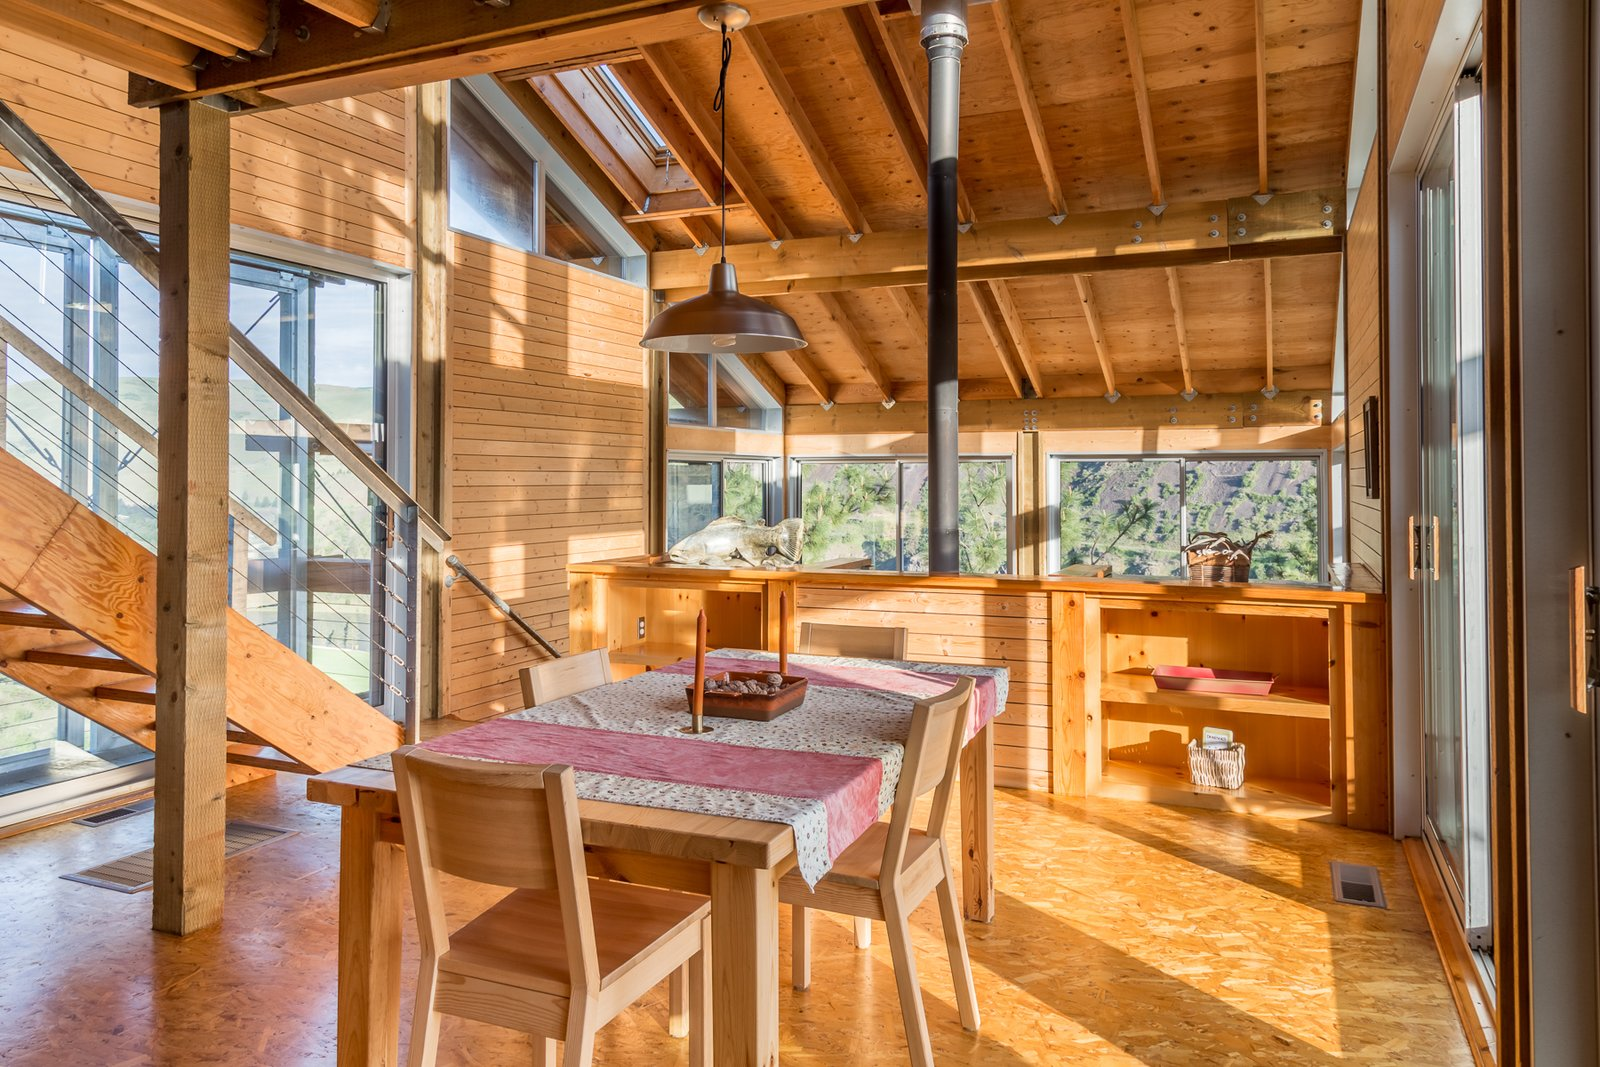 Dining, Shelves, Table, Chair, Pendant, and Plywood A staircase leads up from the dining and kitchen area to a mezzanine loft bedroom.  Best Dining Shelves Table Plywood Photos from Own This Award-Winning Riverside Home in Idaho For $650K